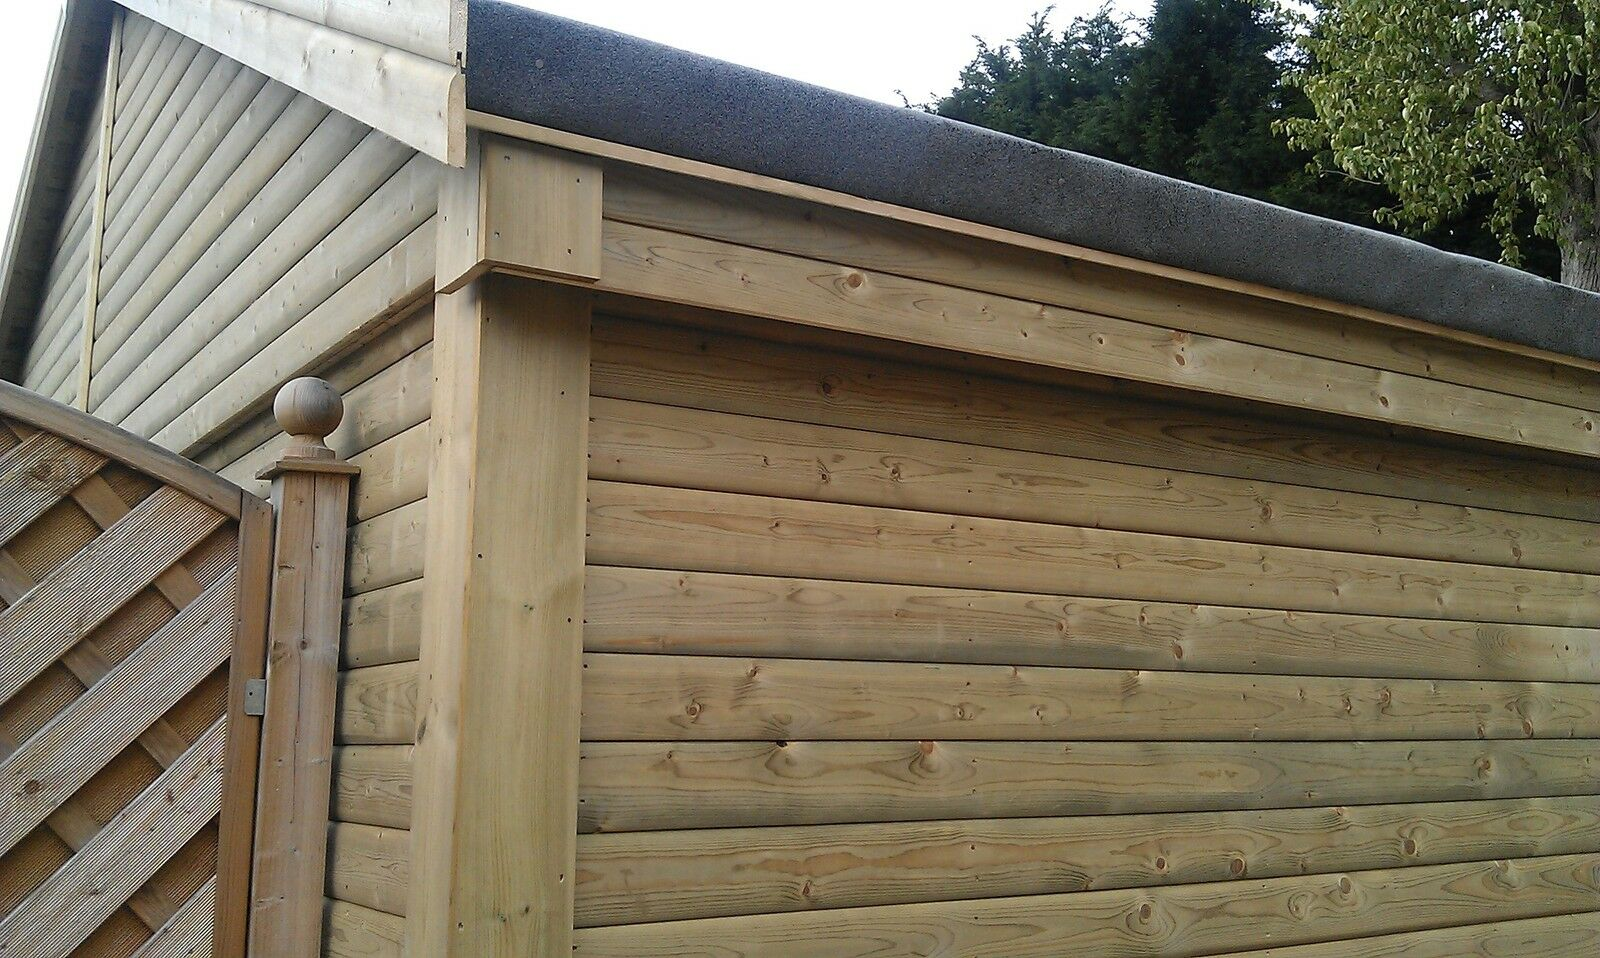 Shiplap loglap cladding top quality t g looking for for Bathroom t g cladding